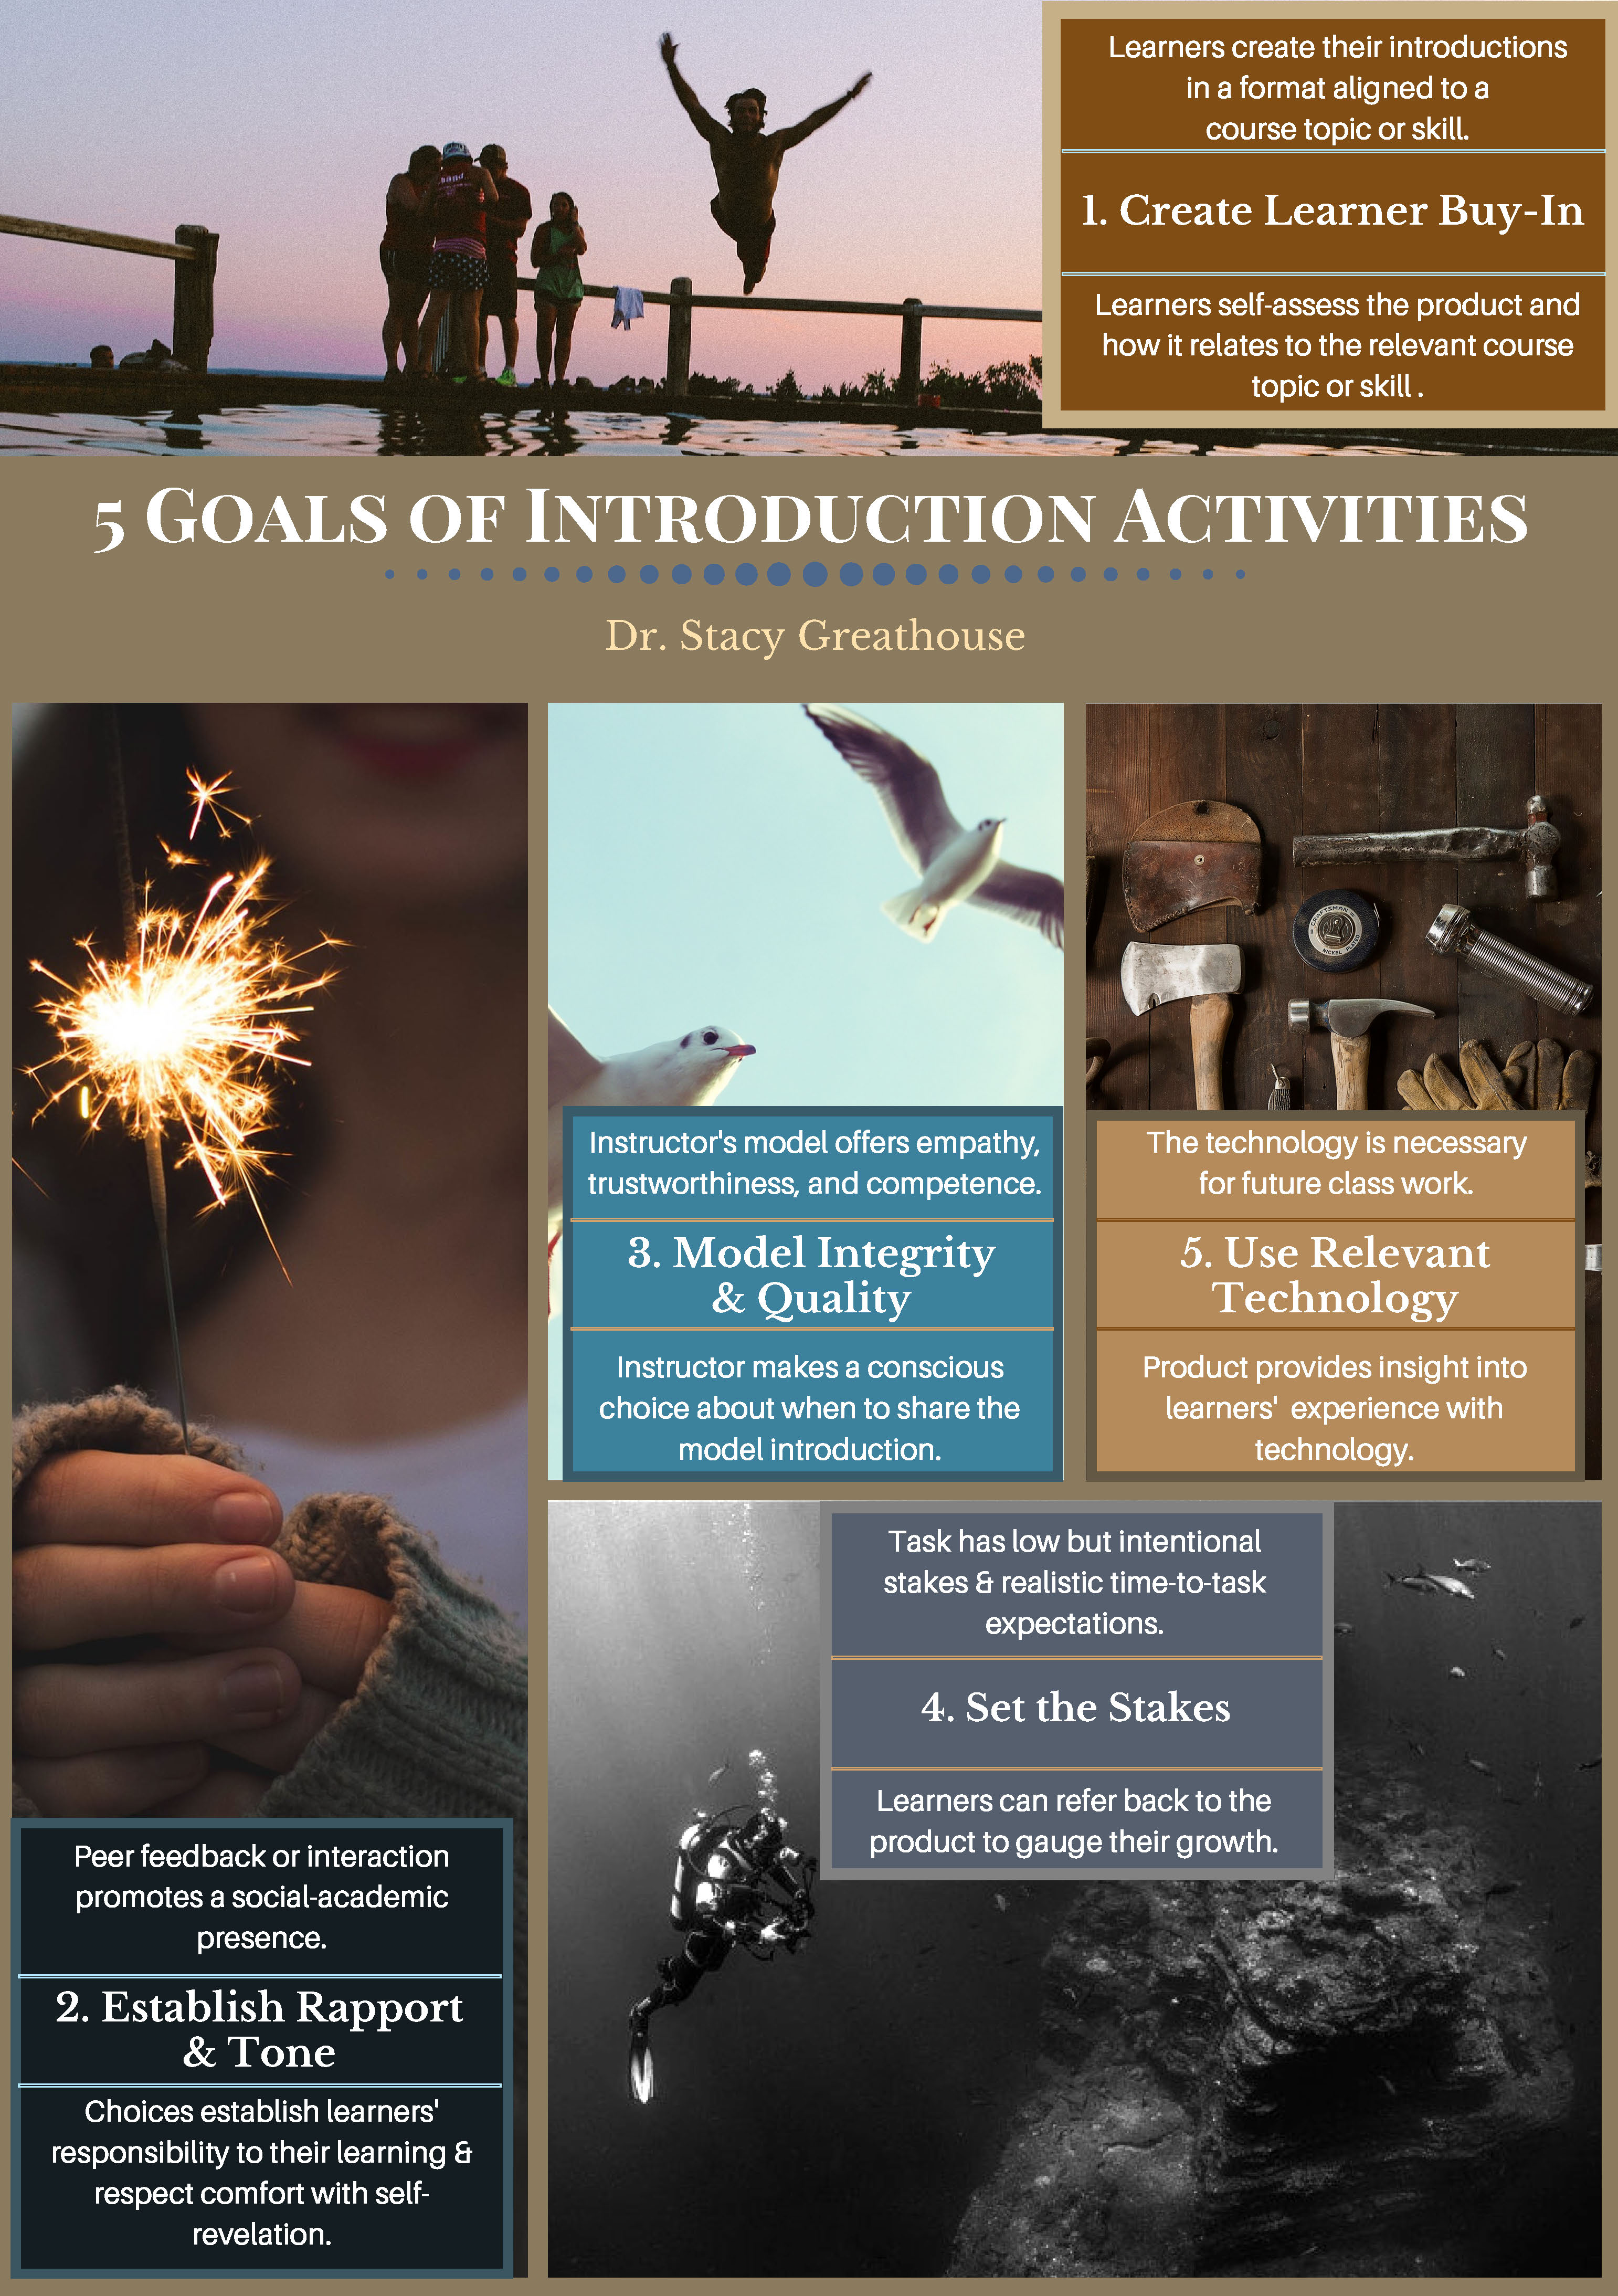 Infographic of the 5 goals of Introduction Activities